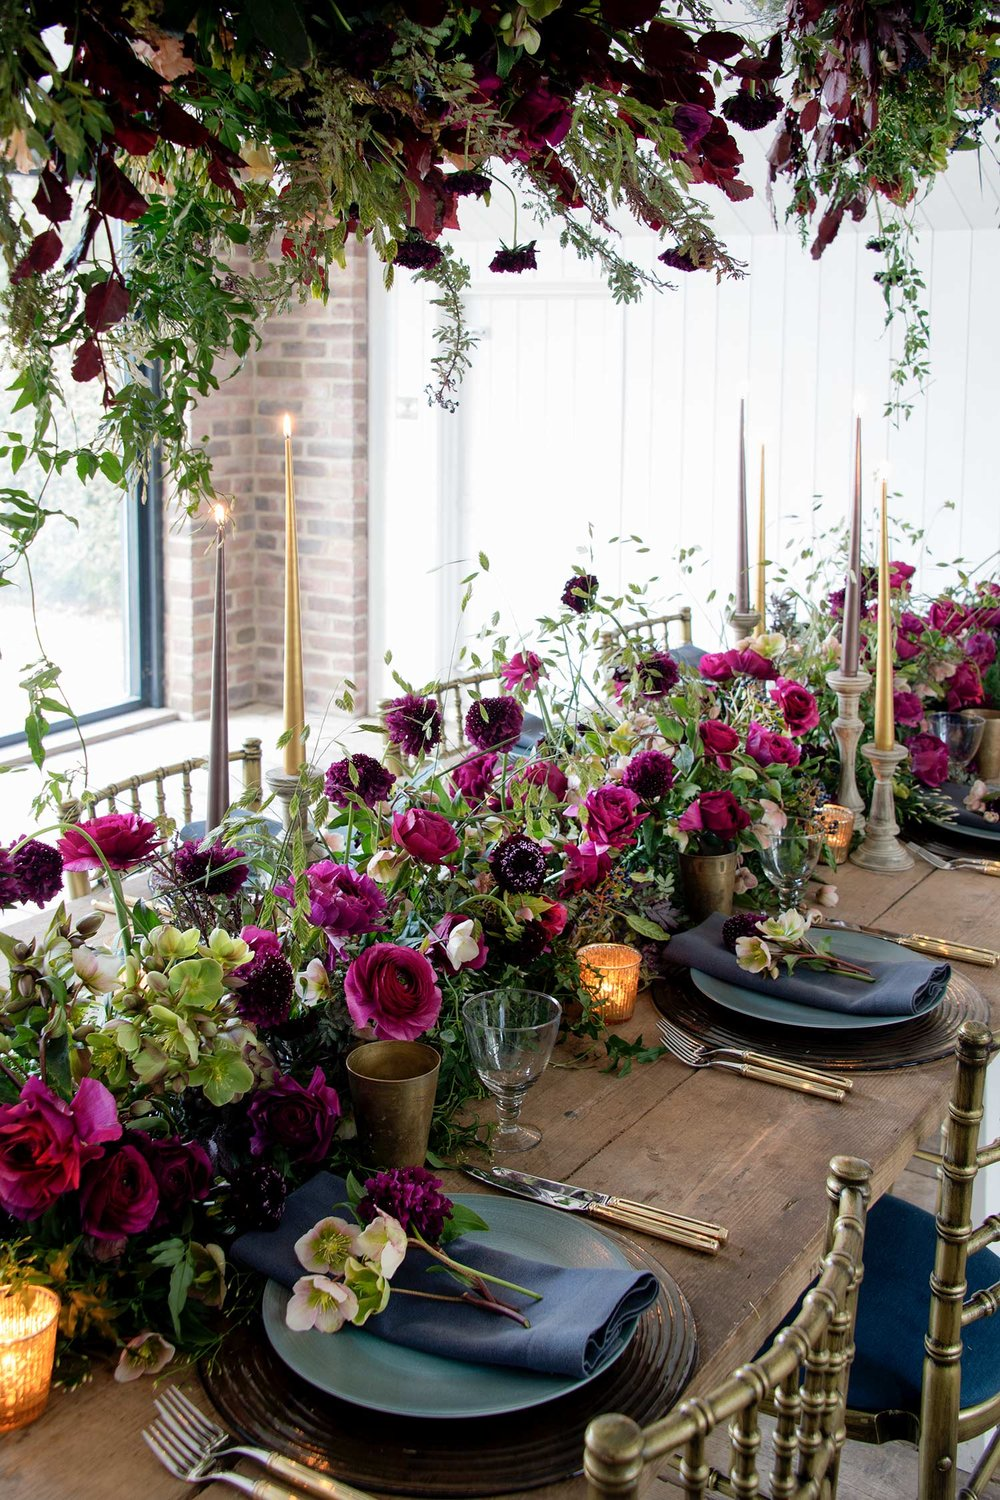 ADVANCED PROFESSIONAL EVENT FLORISTRY - 1 WEEK COURSE